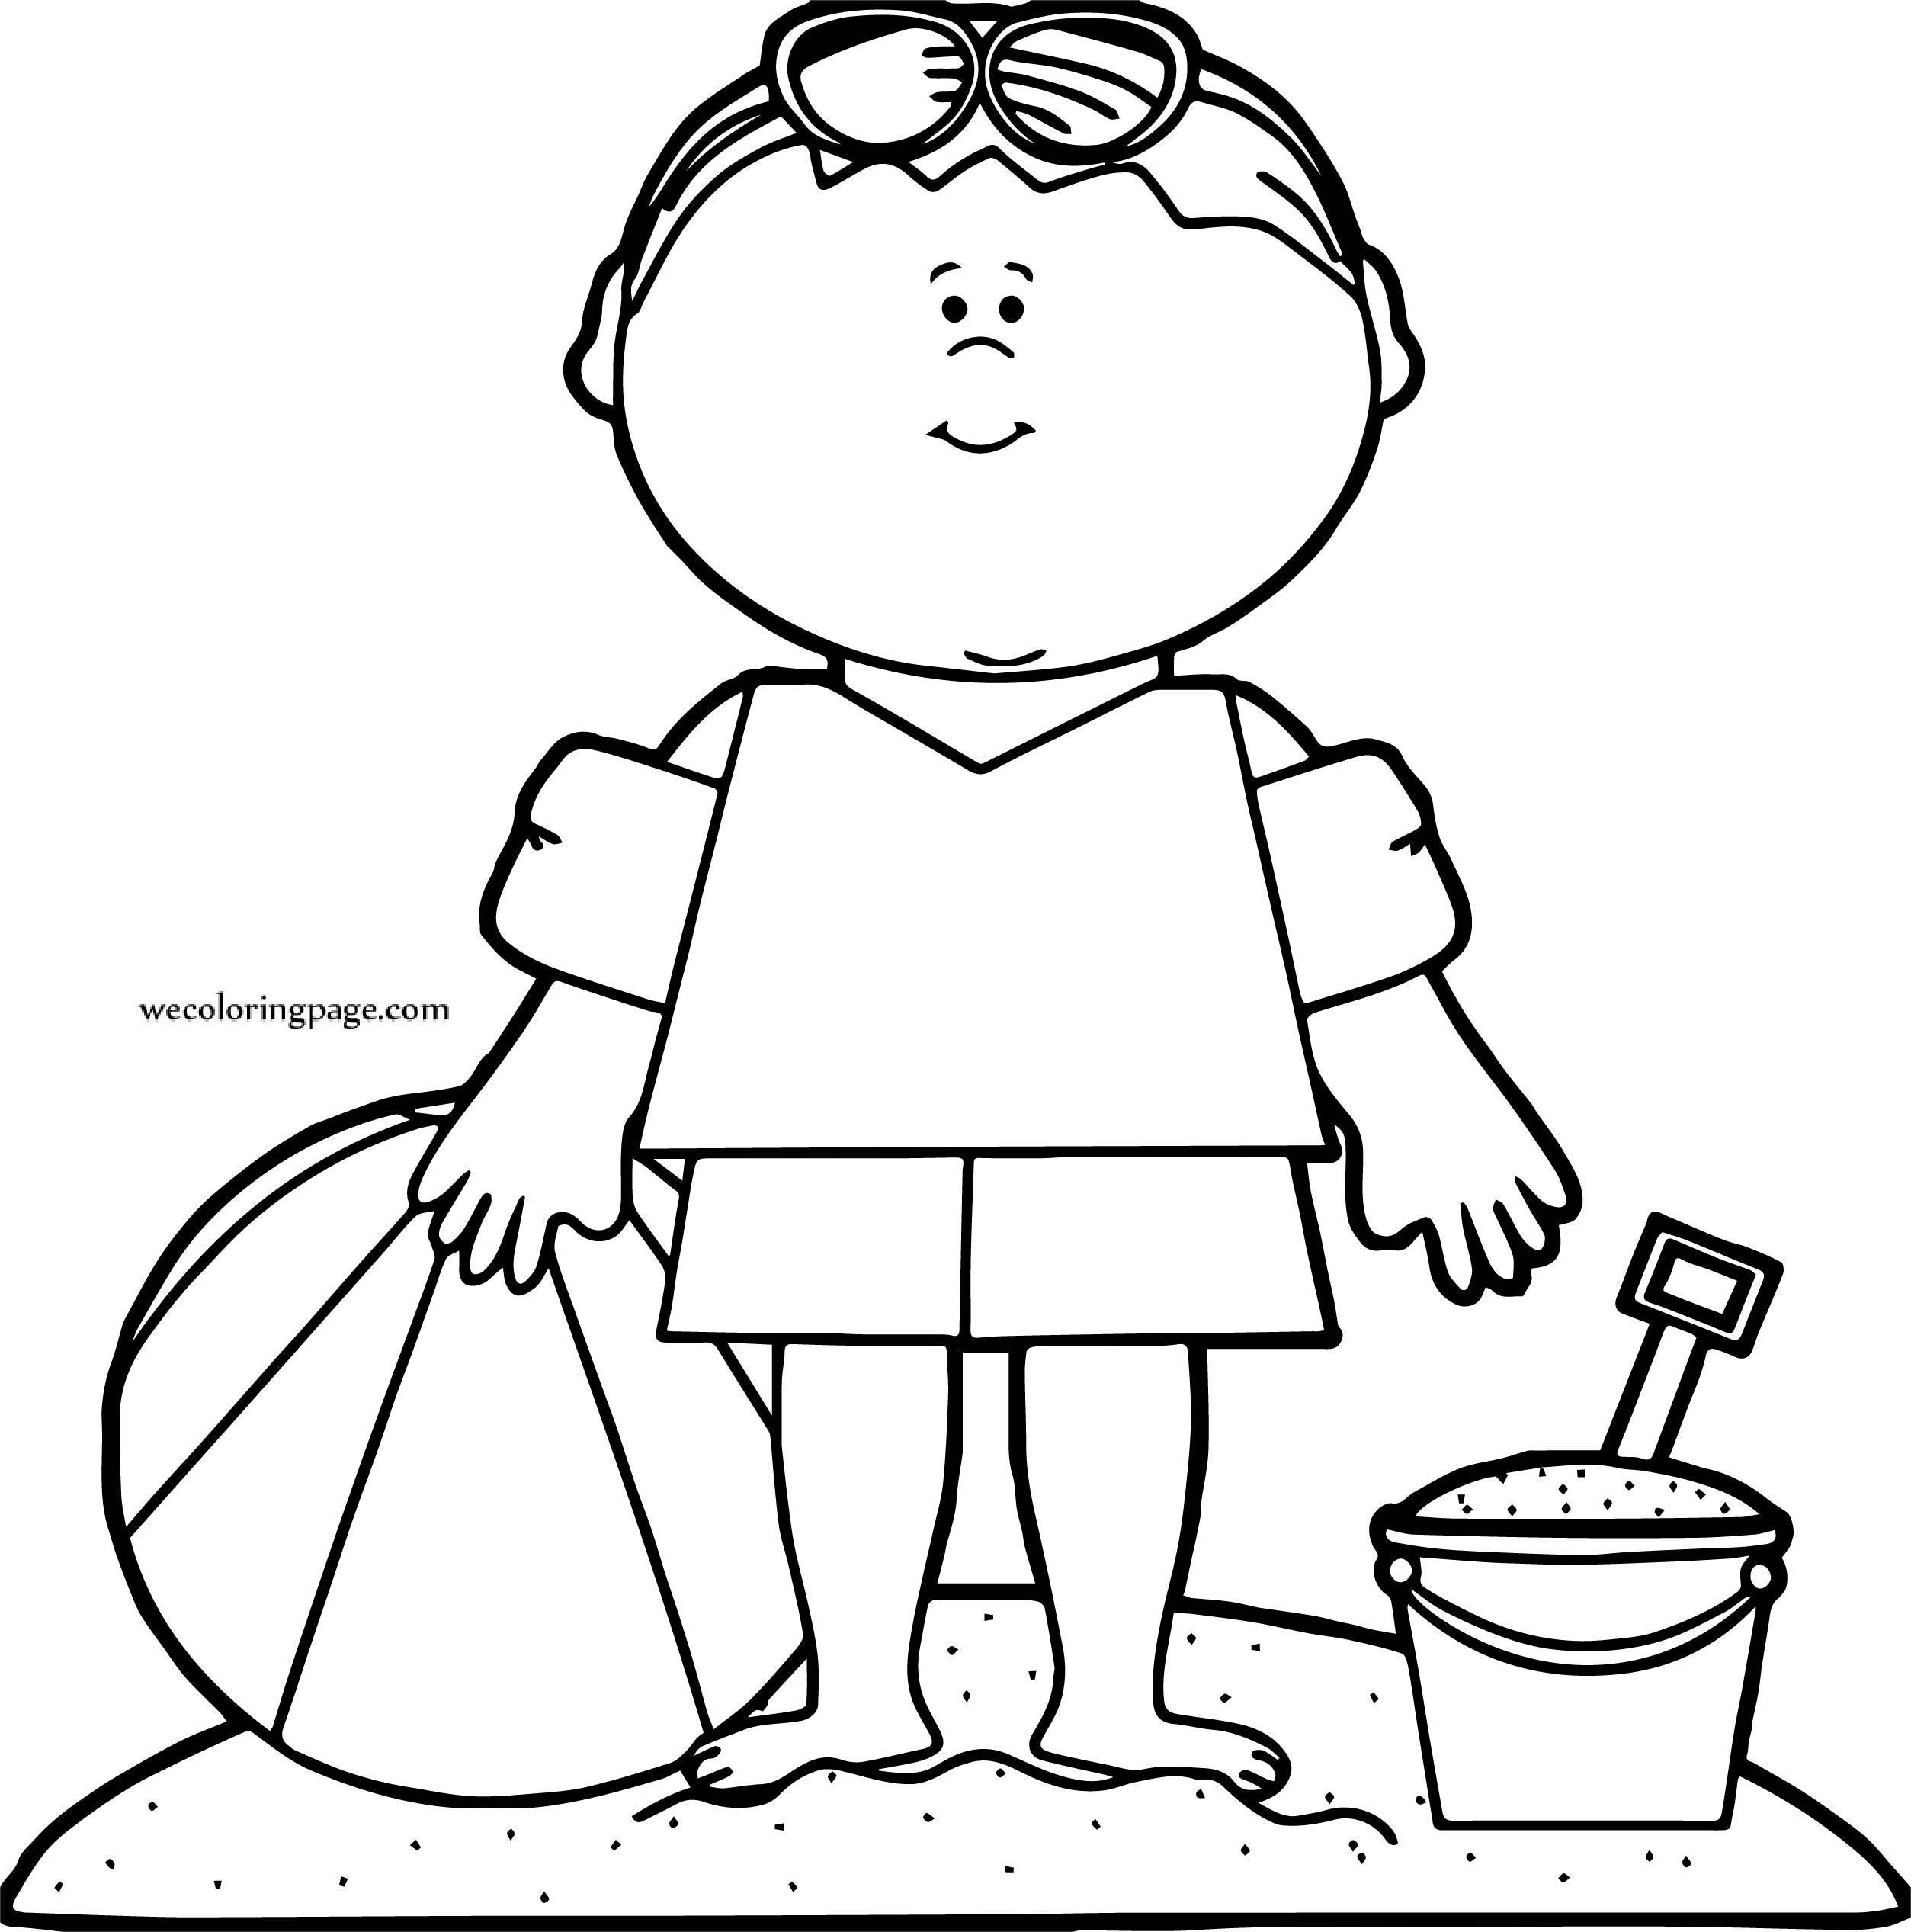 Beach Boy We Coloring Page